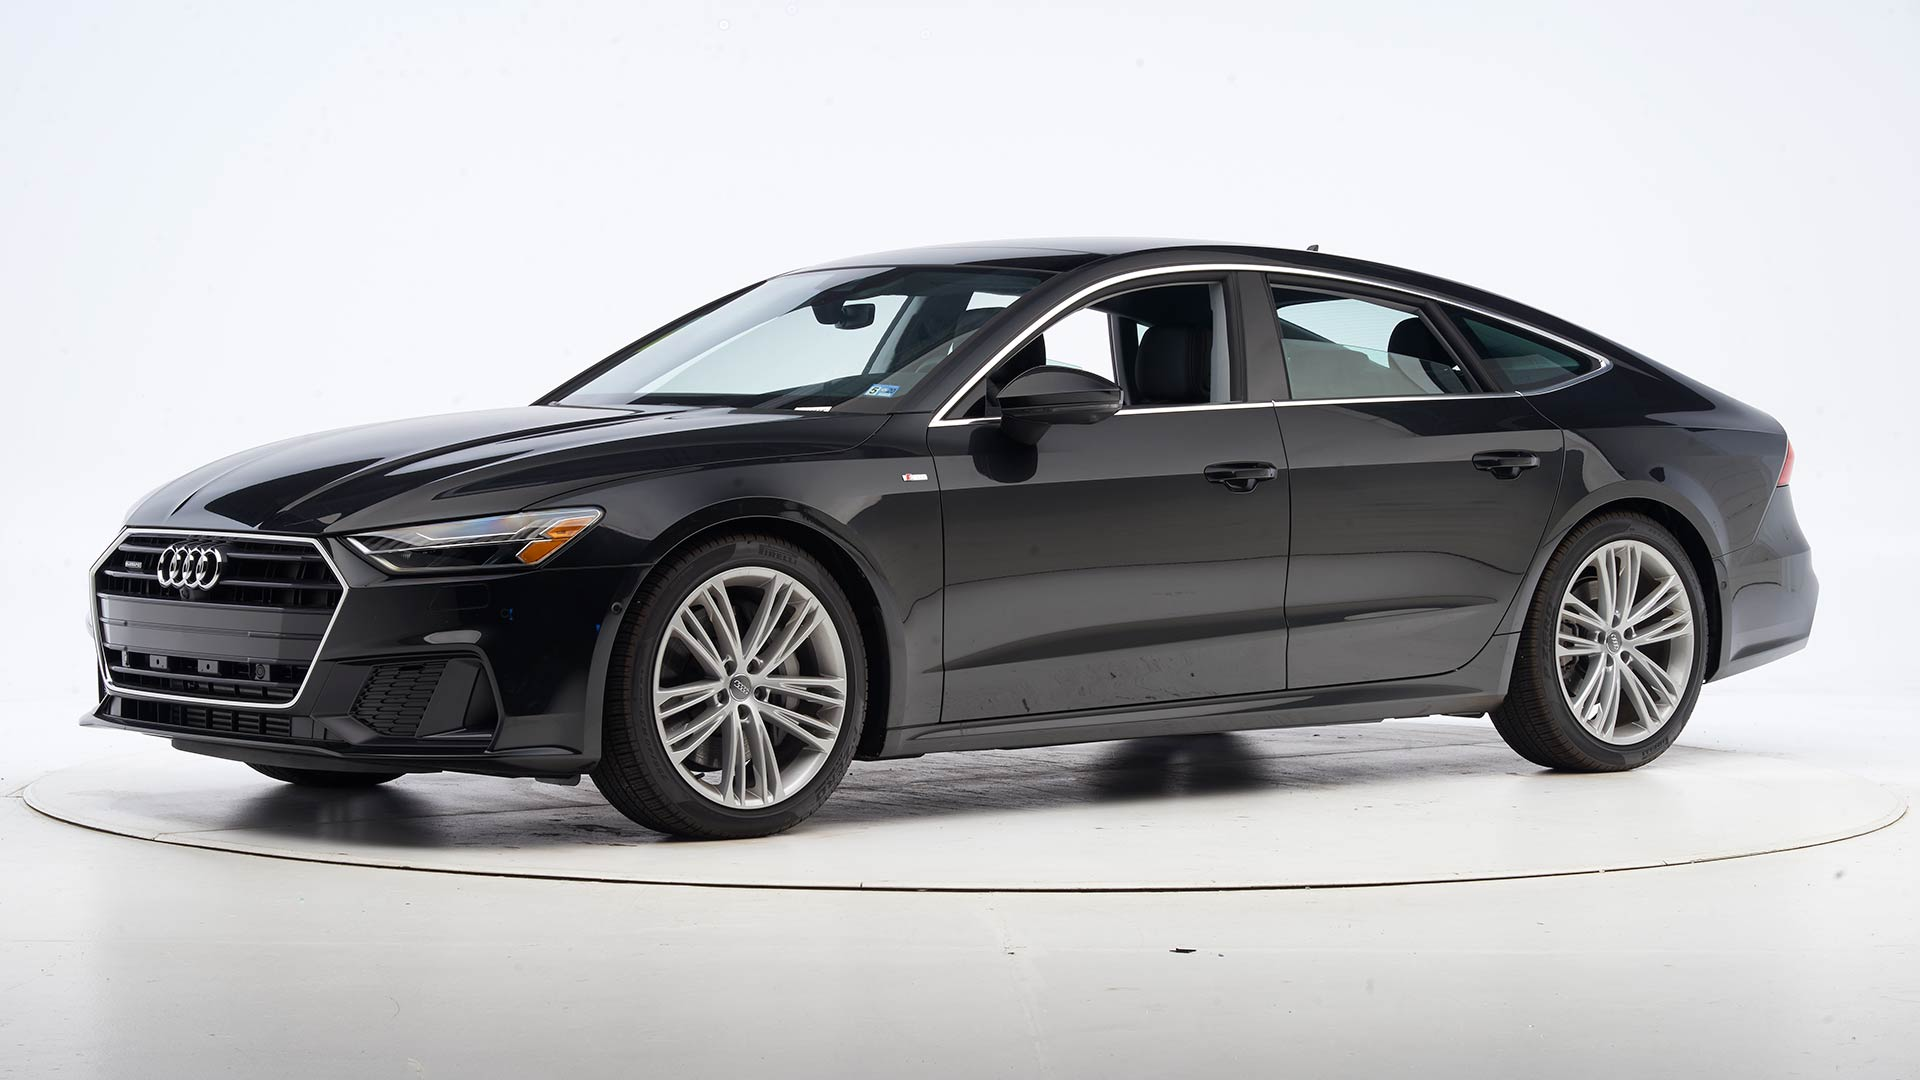 2020 Audi A7 4-door hatchback